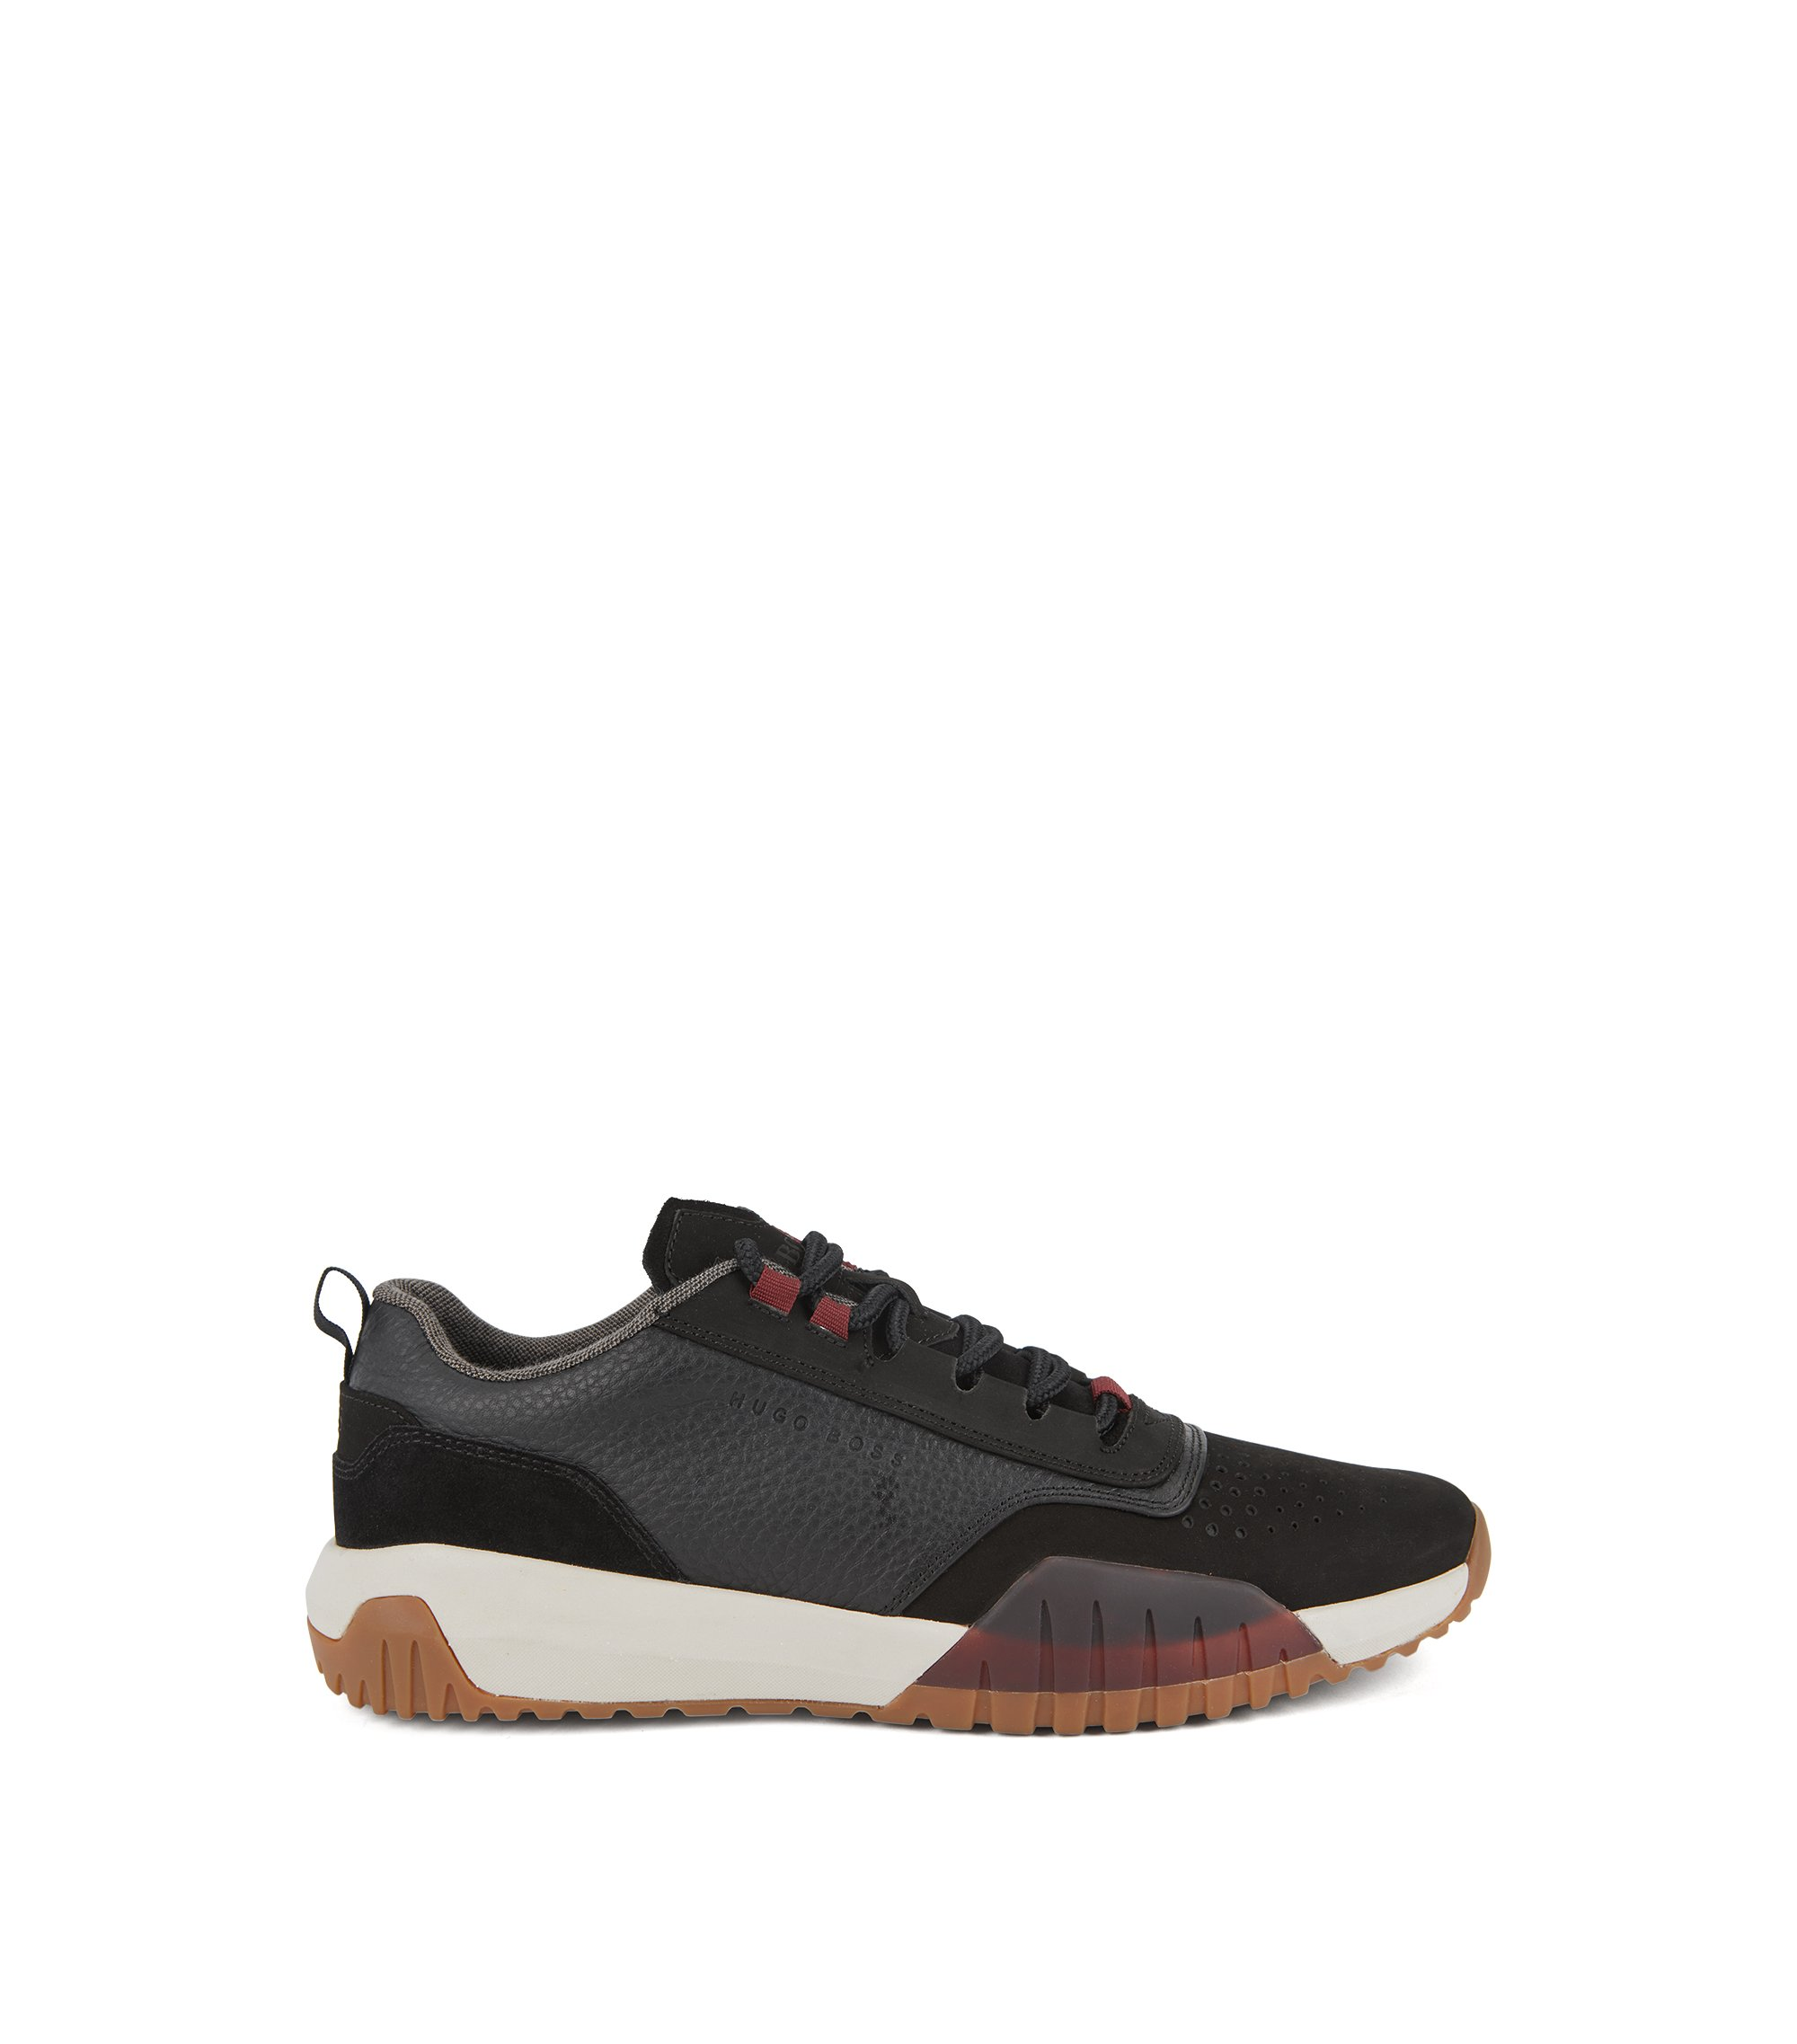 Running-inspired trainers in nubuck, tumbled and suede leather, Black